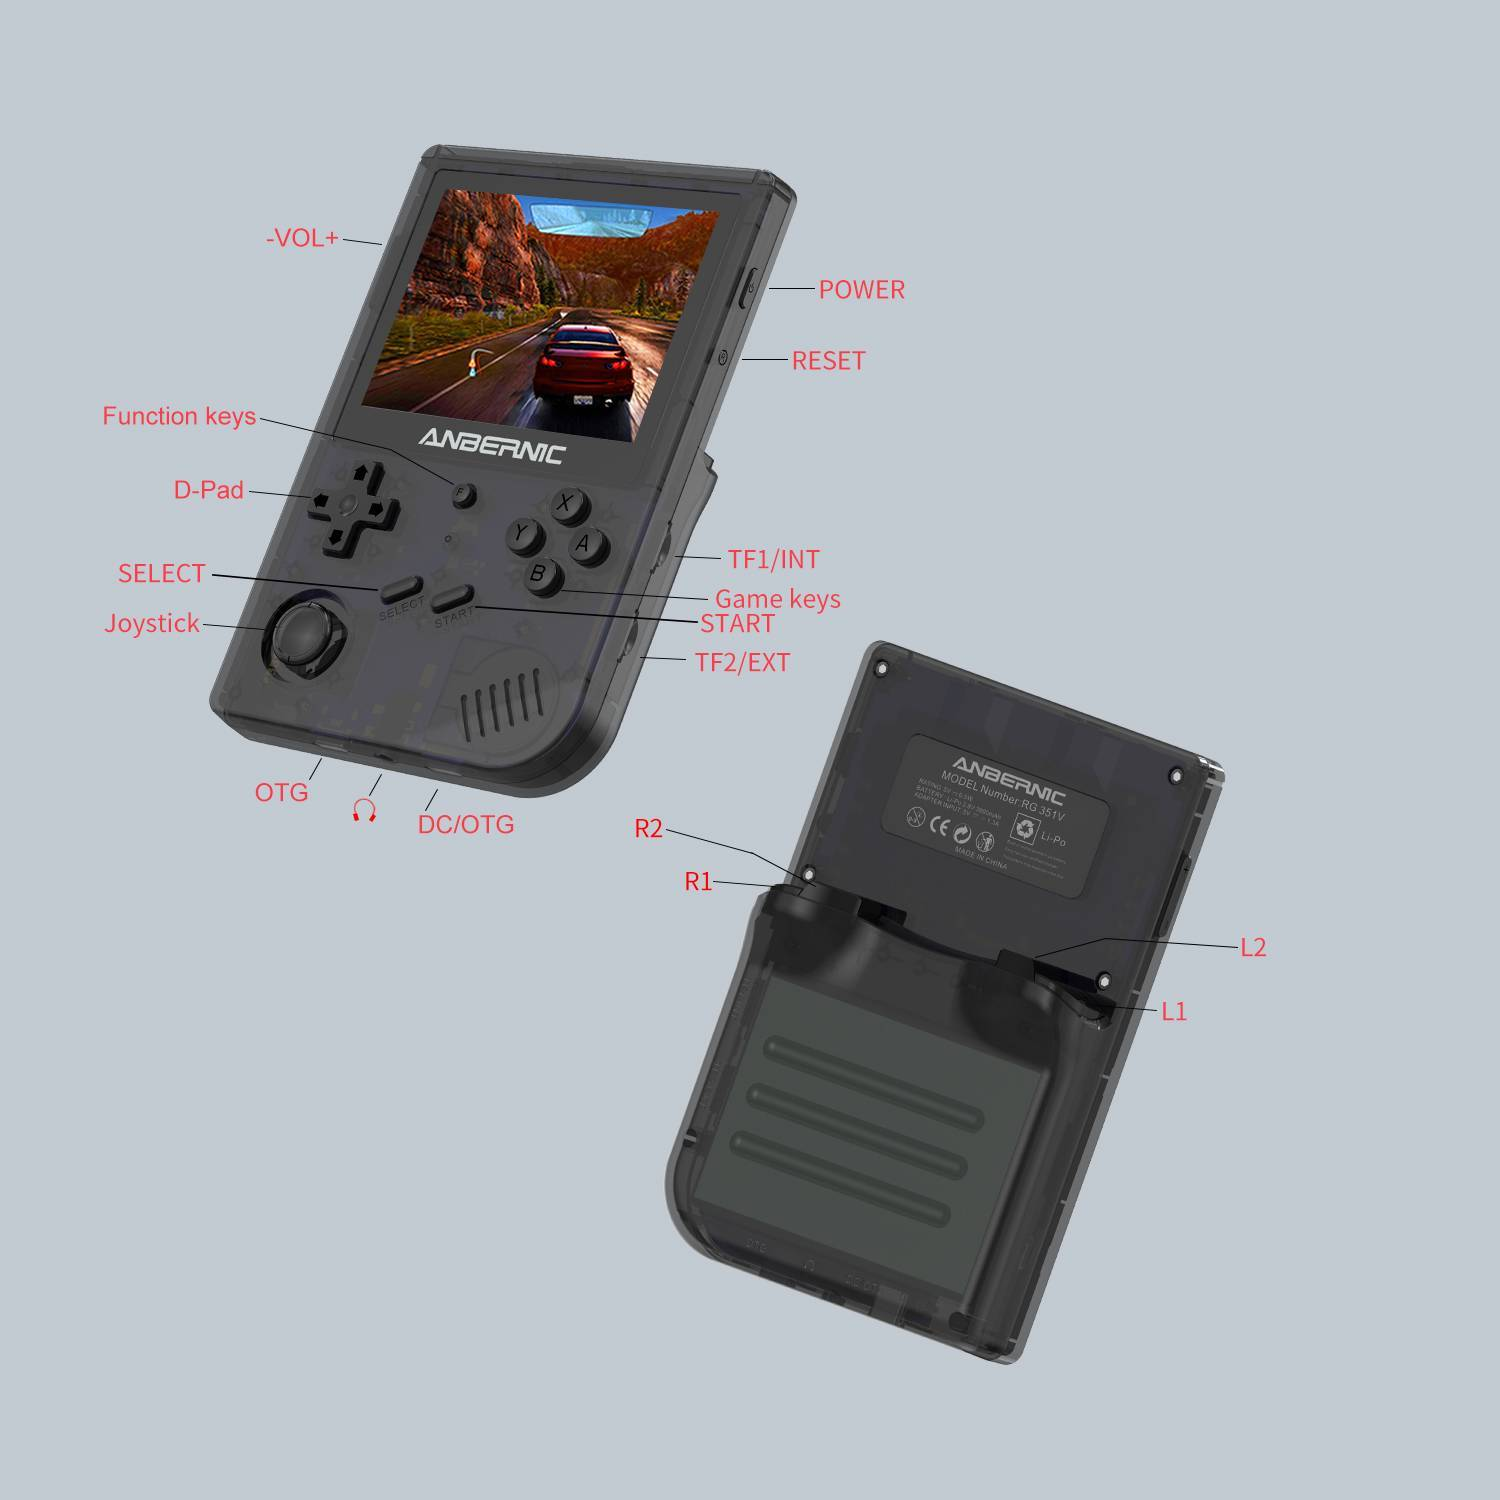 ANBERNIC Black RG351V Retro Gaming Handheld - Showing Button mapping